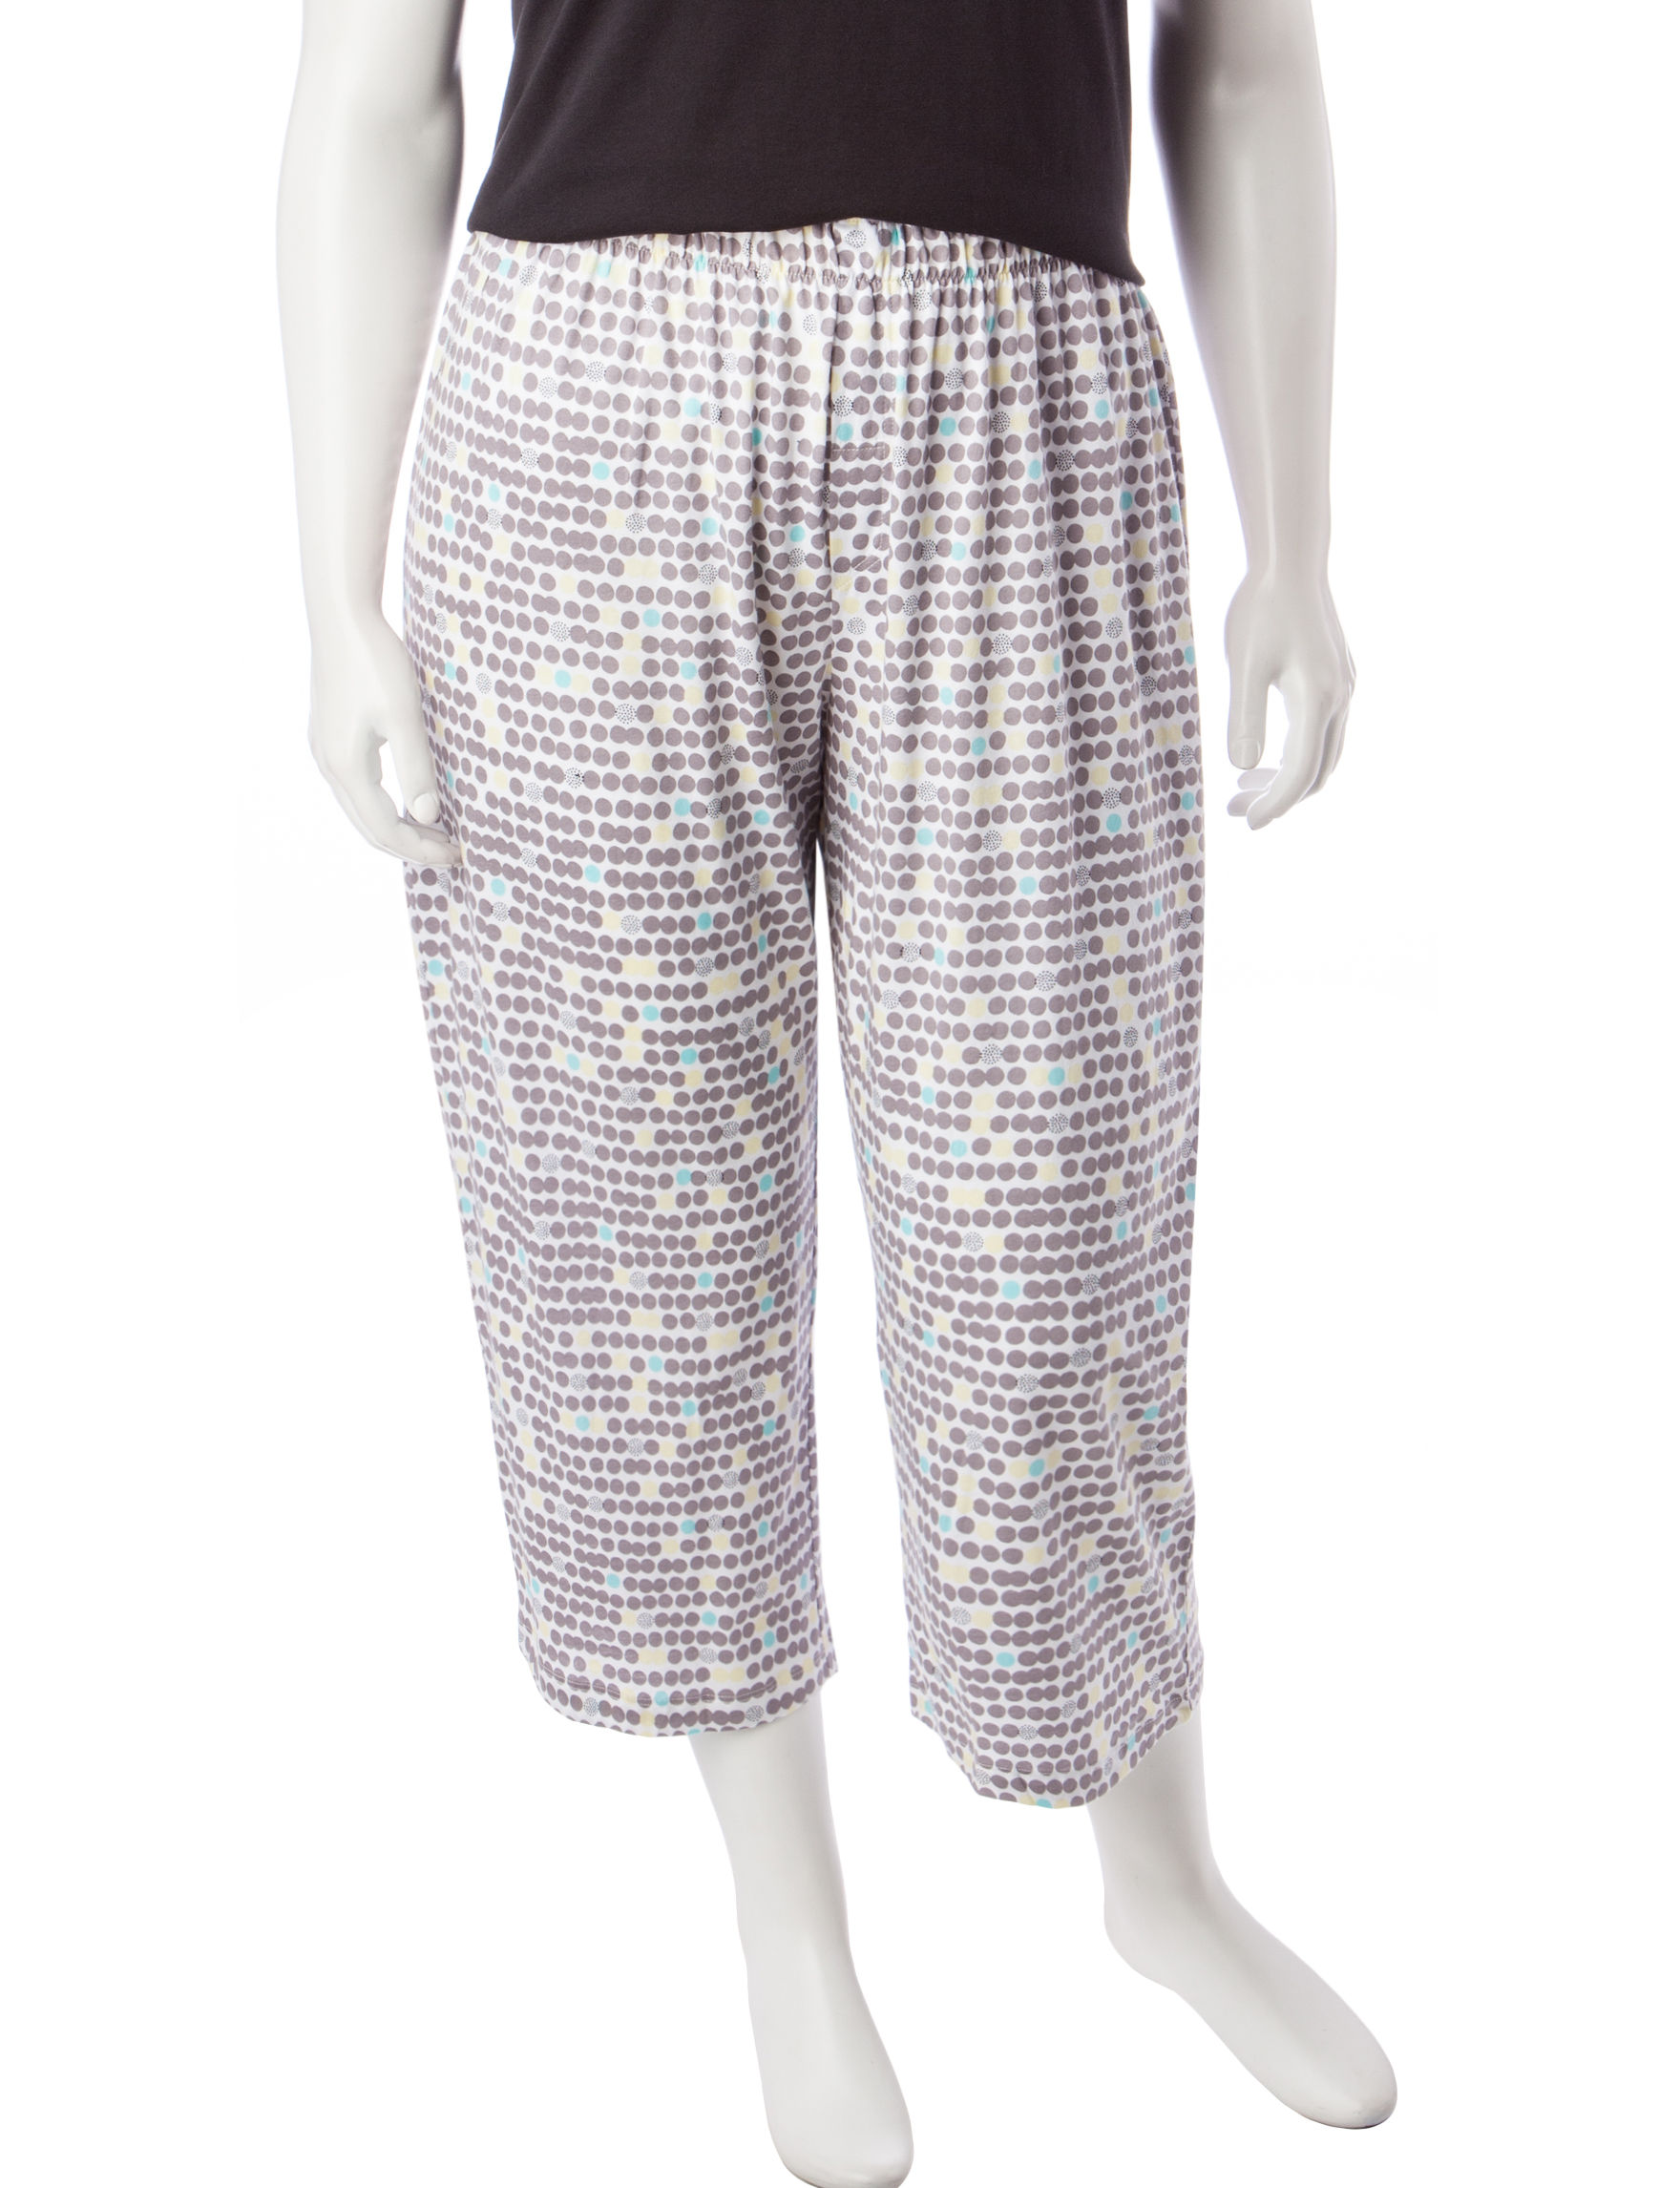 Hue White Pajama Bottoms